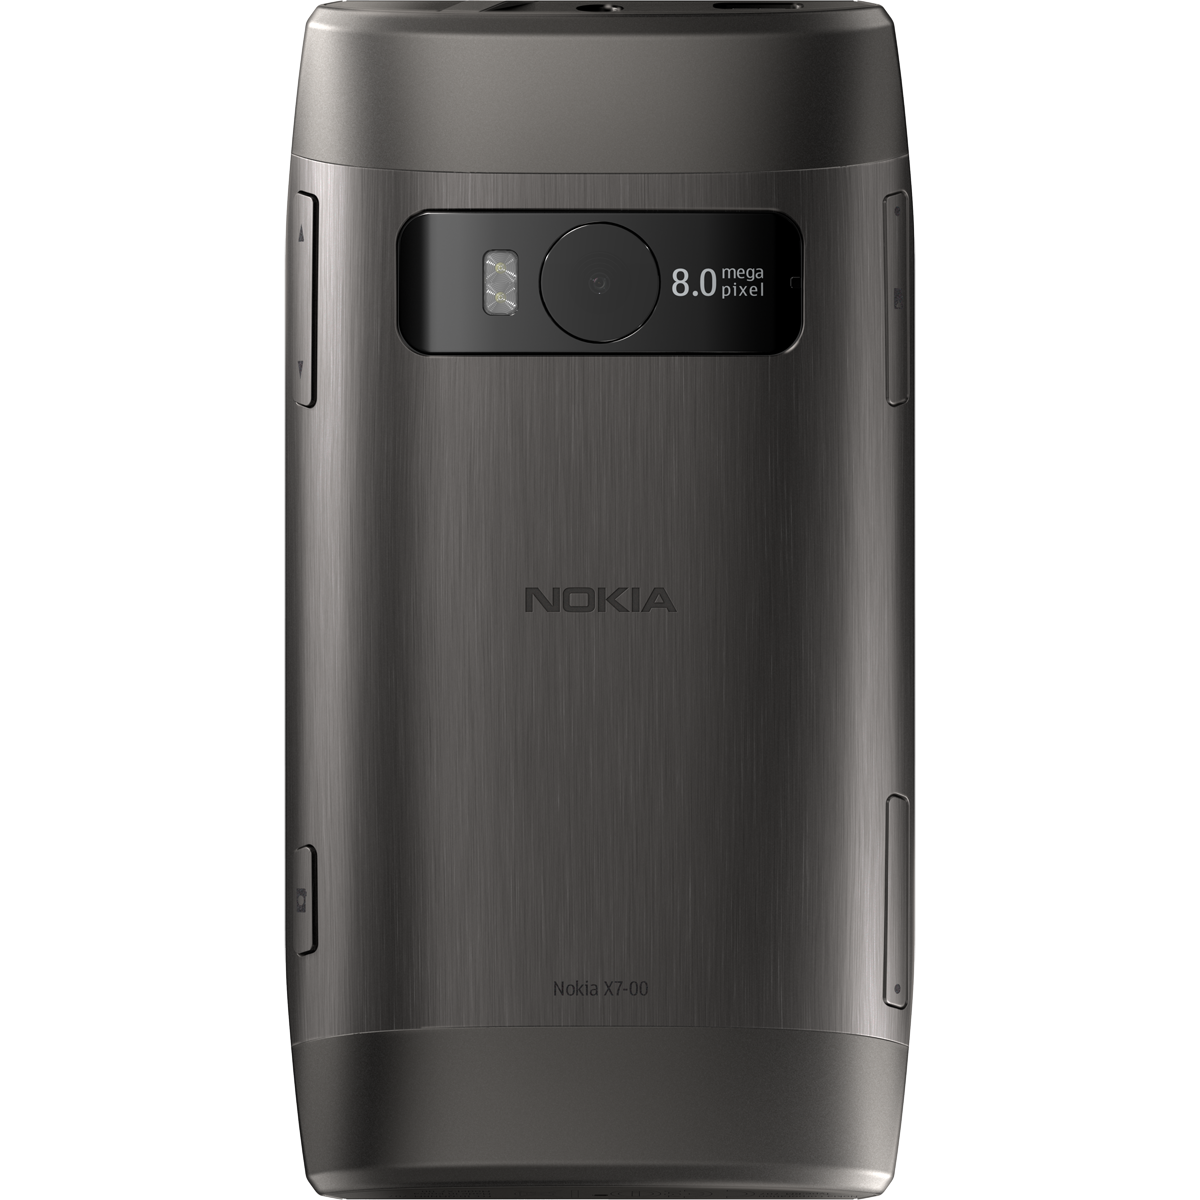 Nokia x7 00 software - Nokia Fast Usb Charger Ac 10uc Na Tw Nokia Stereo Headset Wh 701 Nokia 8 Gb Microsdhc Card Mu 43 Pre Installed In The Device Quick Start Guide